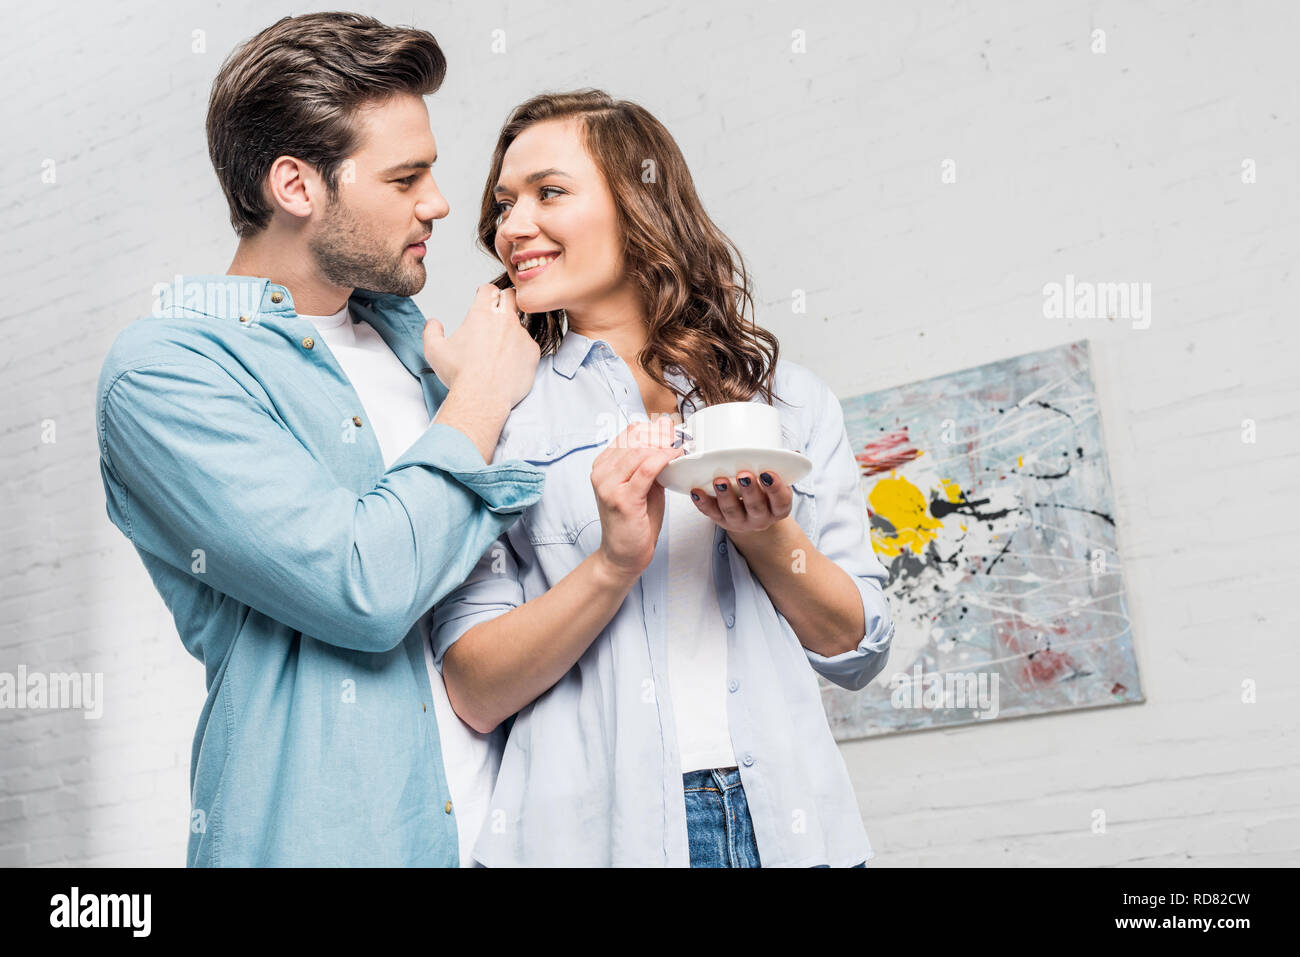 man tenderly embracing attractive woman holding cup of coffee at home - Stock Image